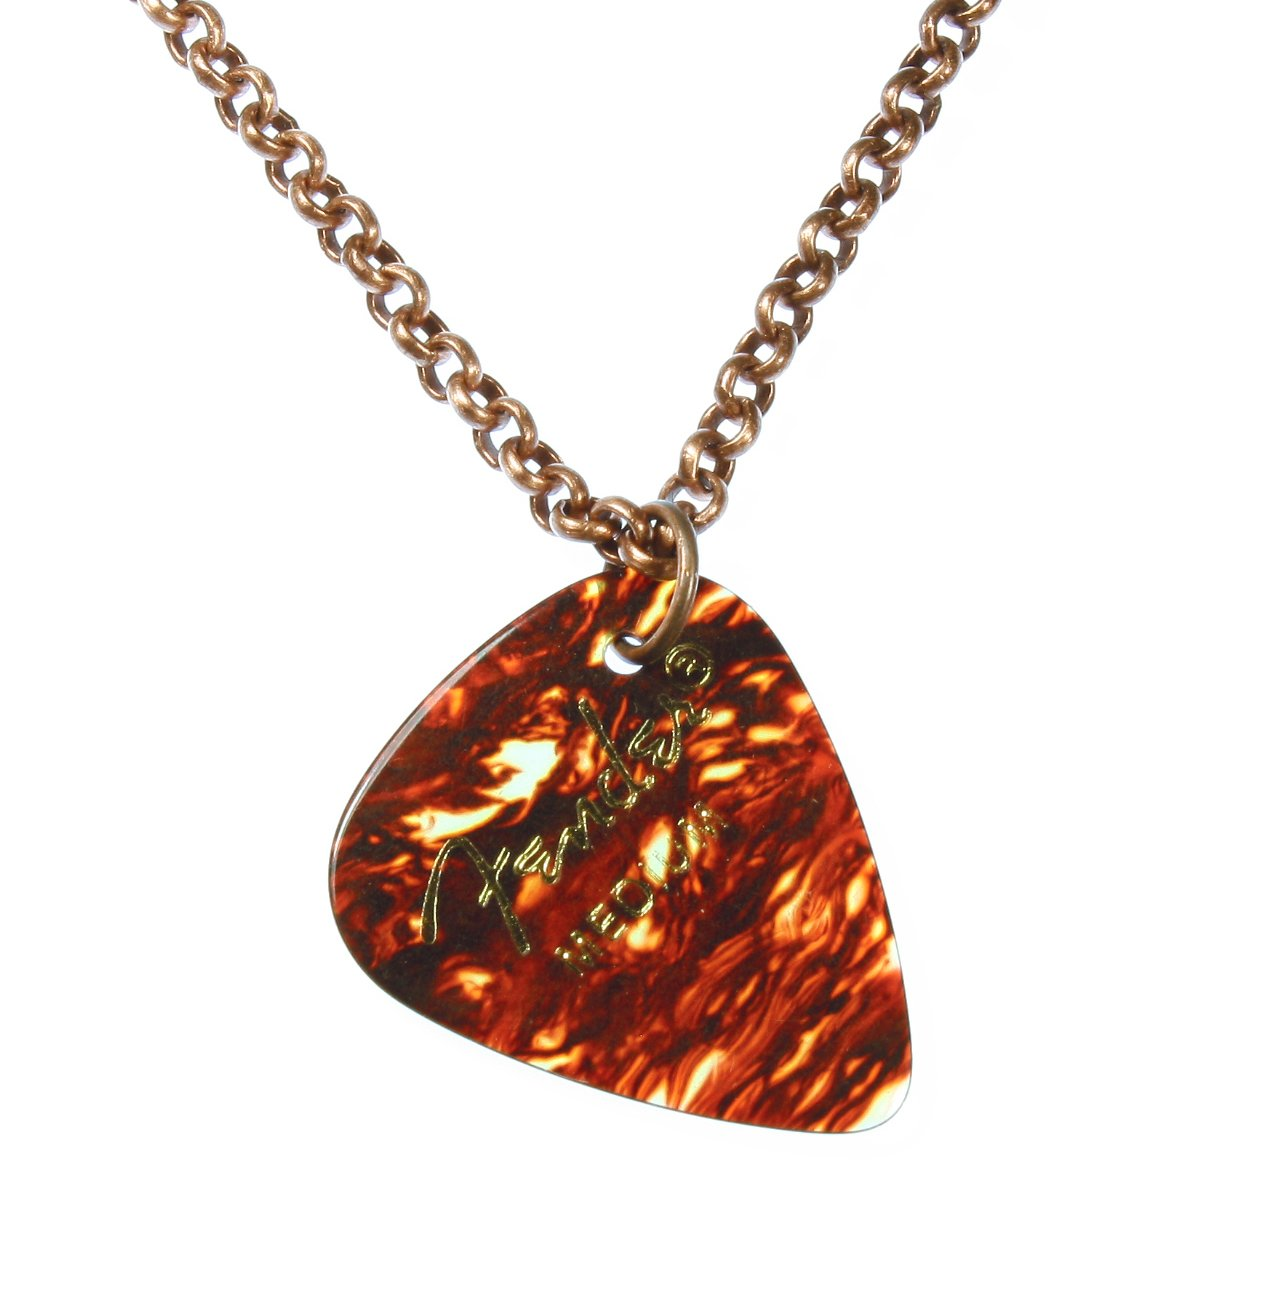 ARThouse Guitar Player Genuine Fender Guitar Pick Necklace on Copper Plated Chain; 22 Inches by ARThouse